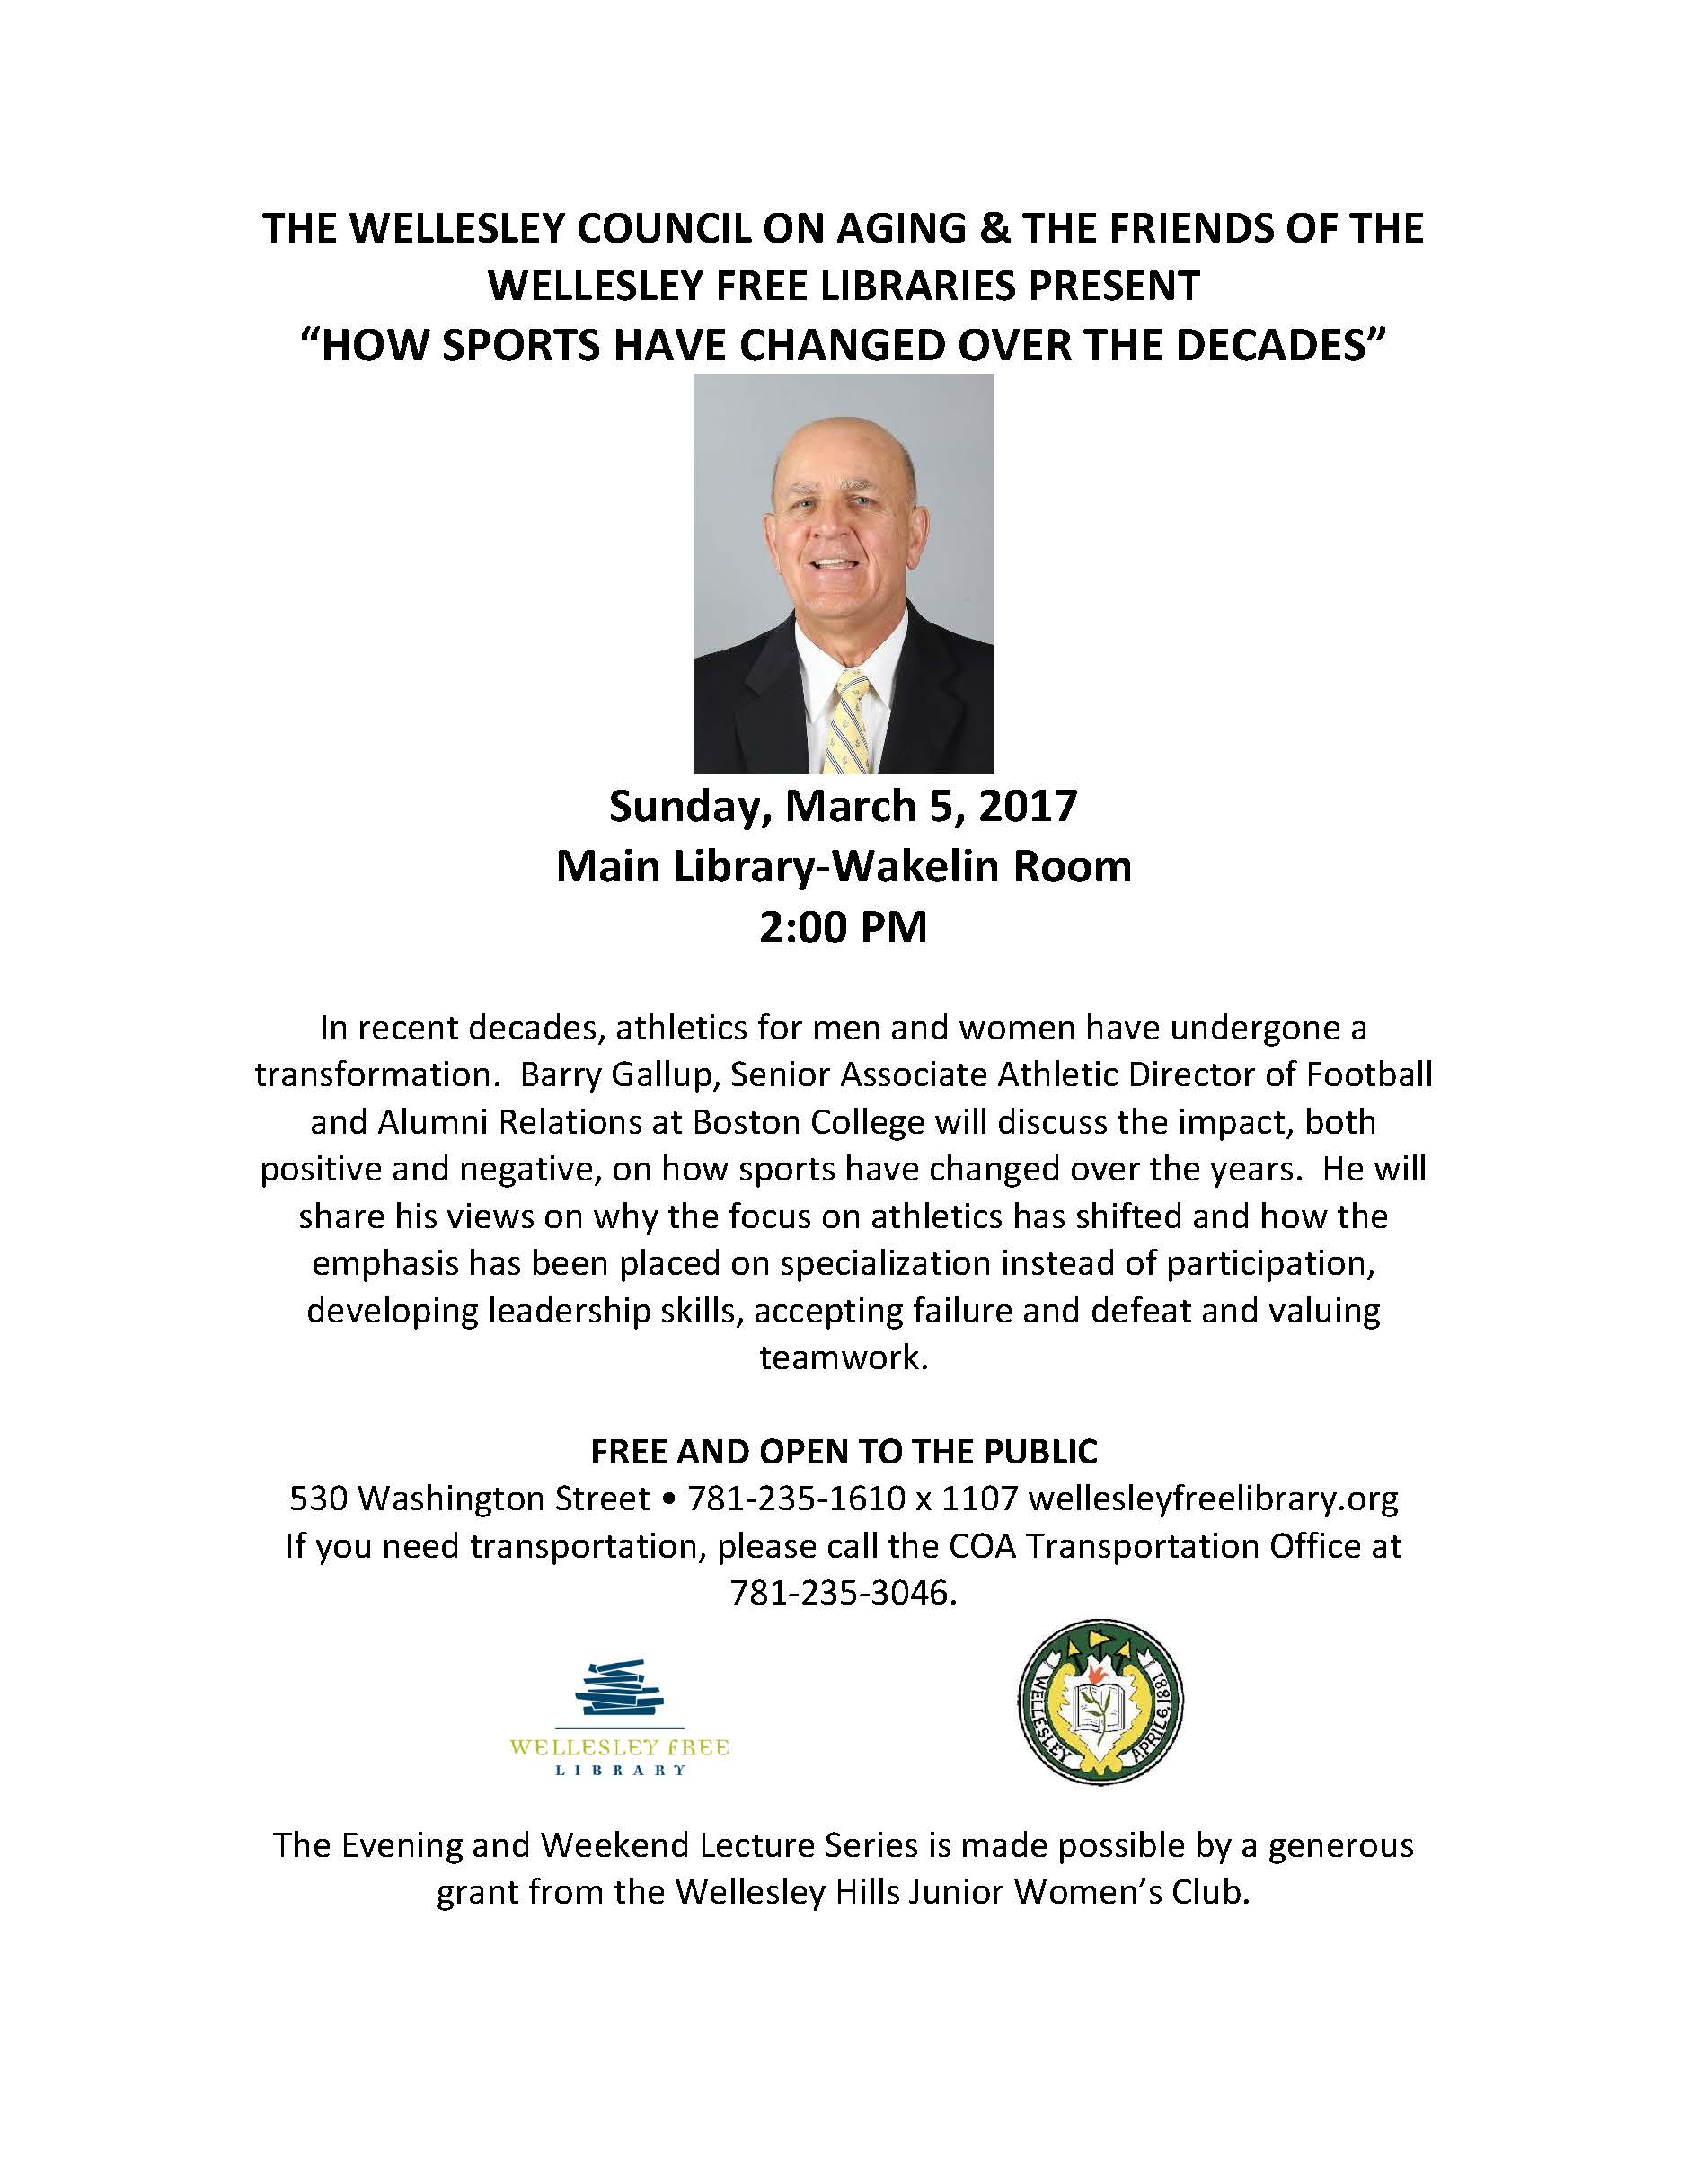 Barry Gallup in Wellesley - March 5 2017